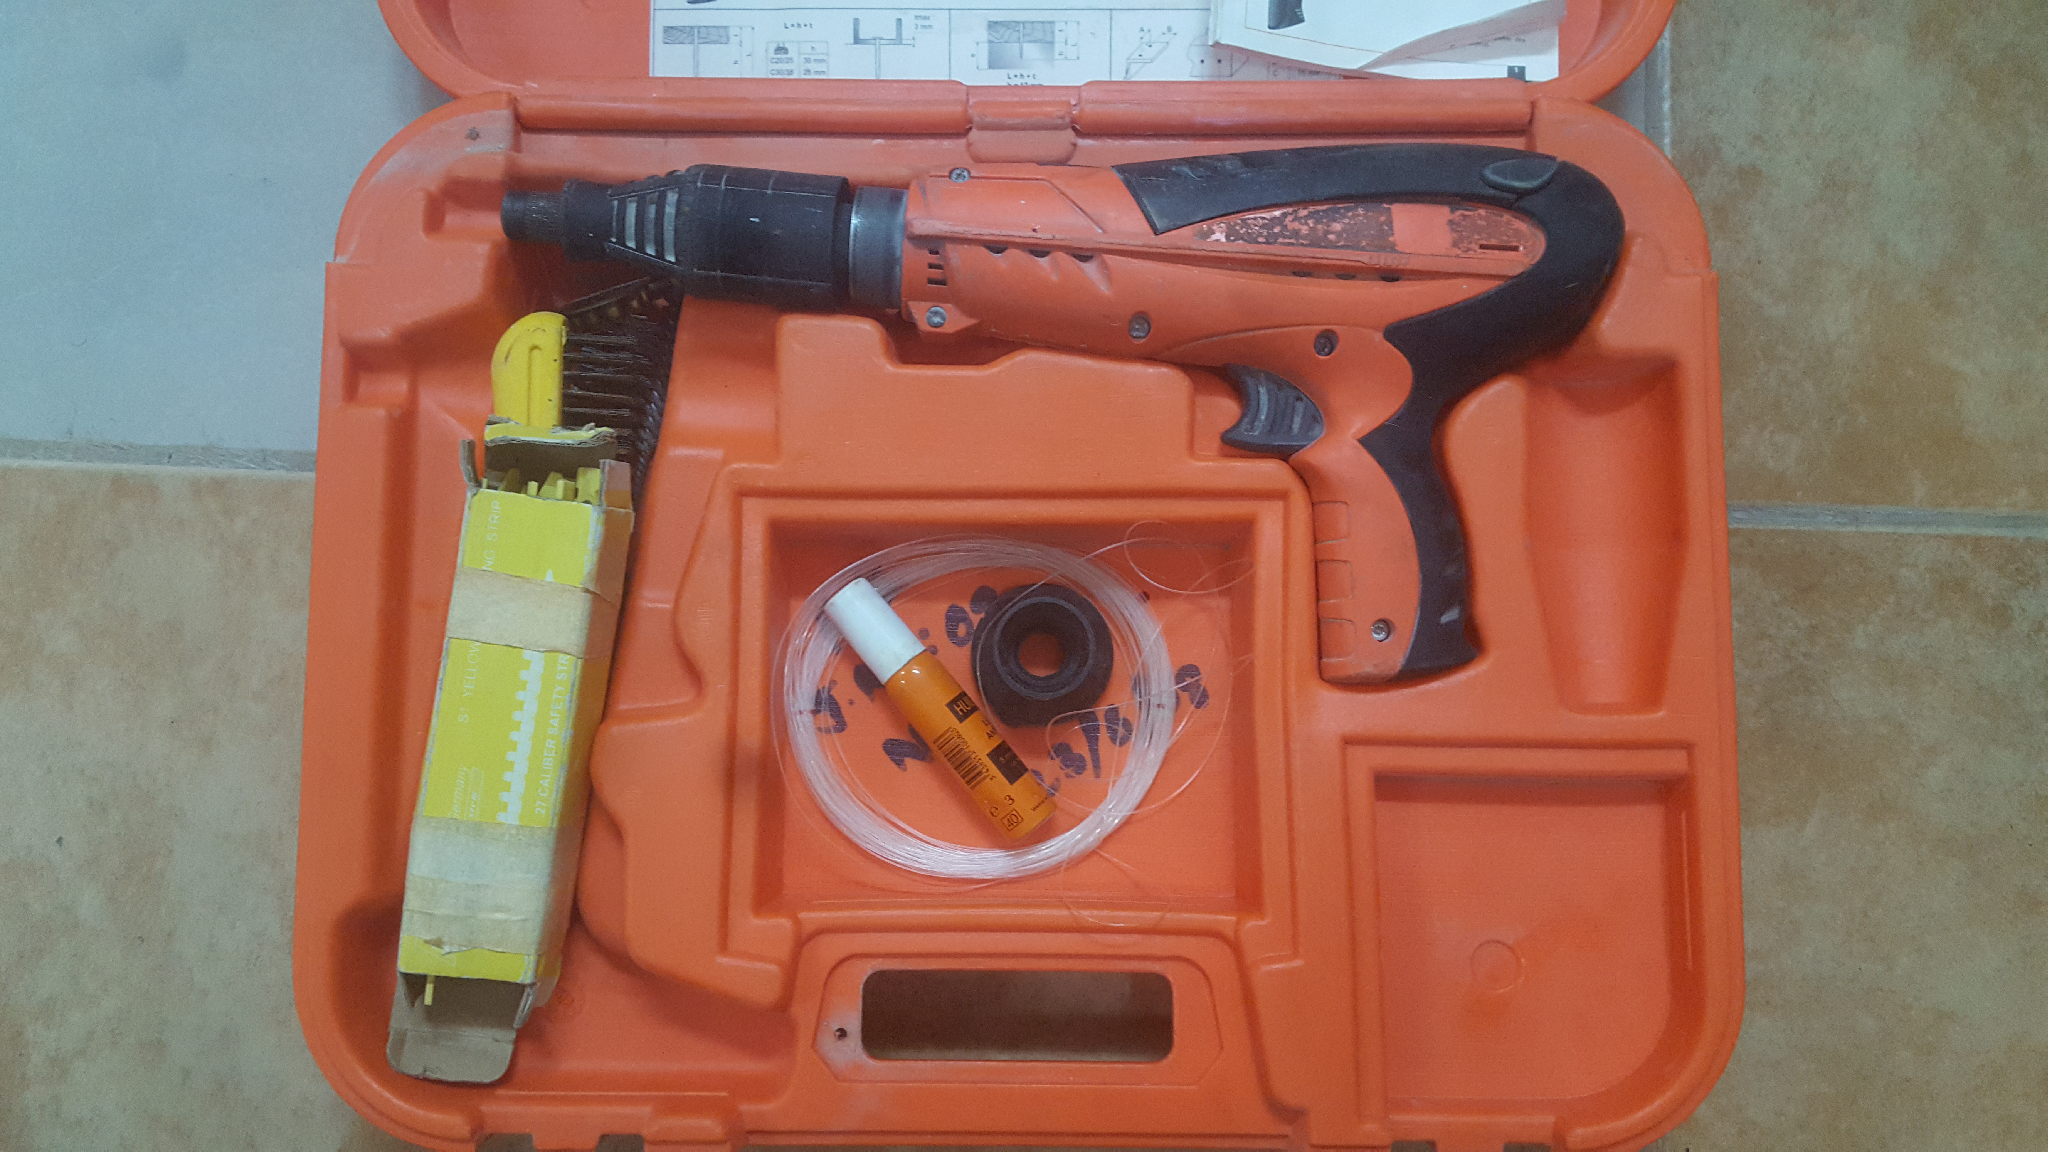 Different tools for sale